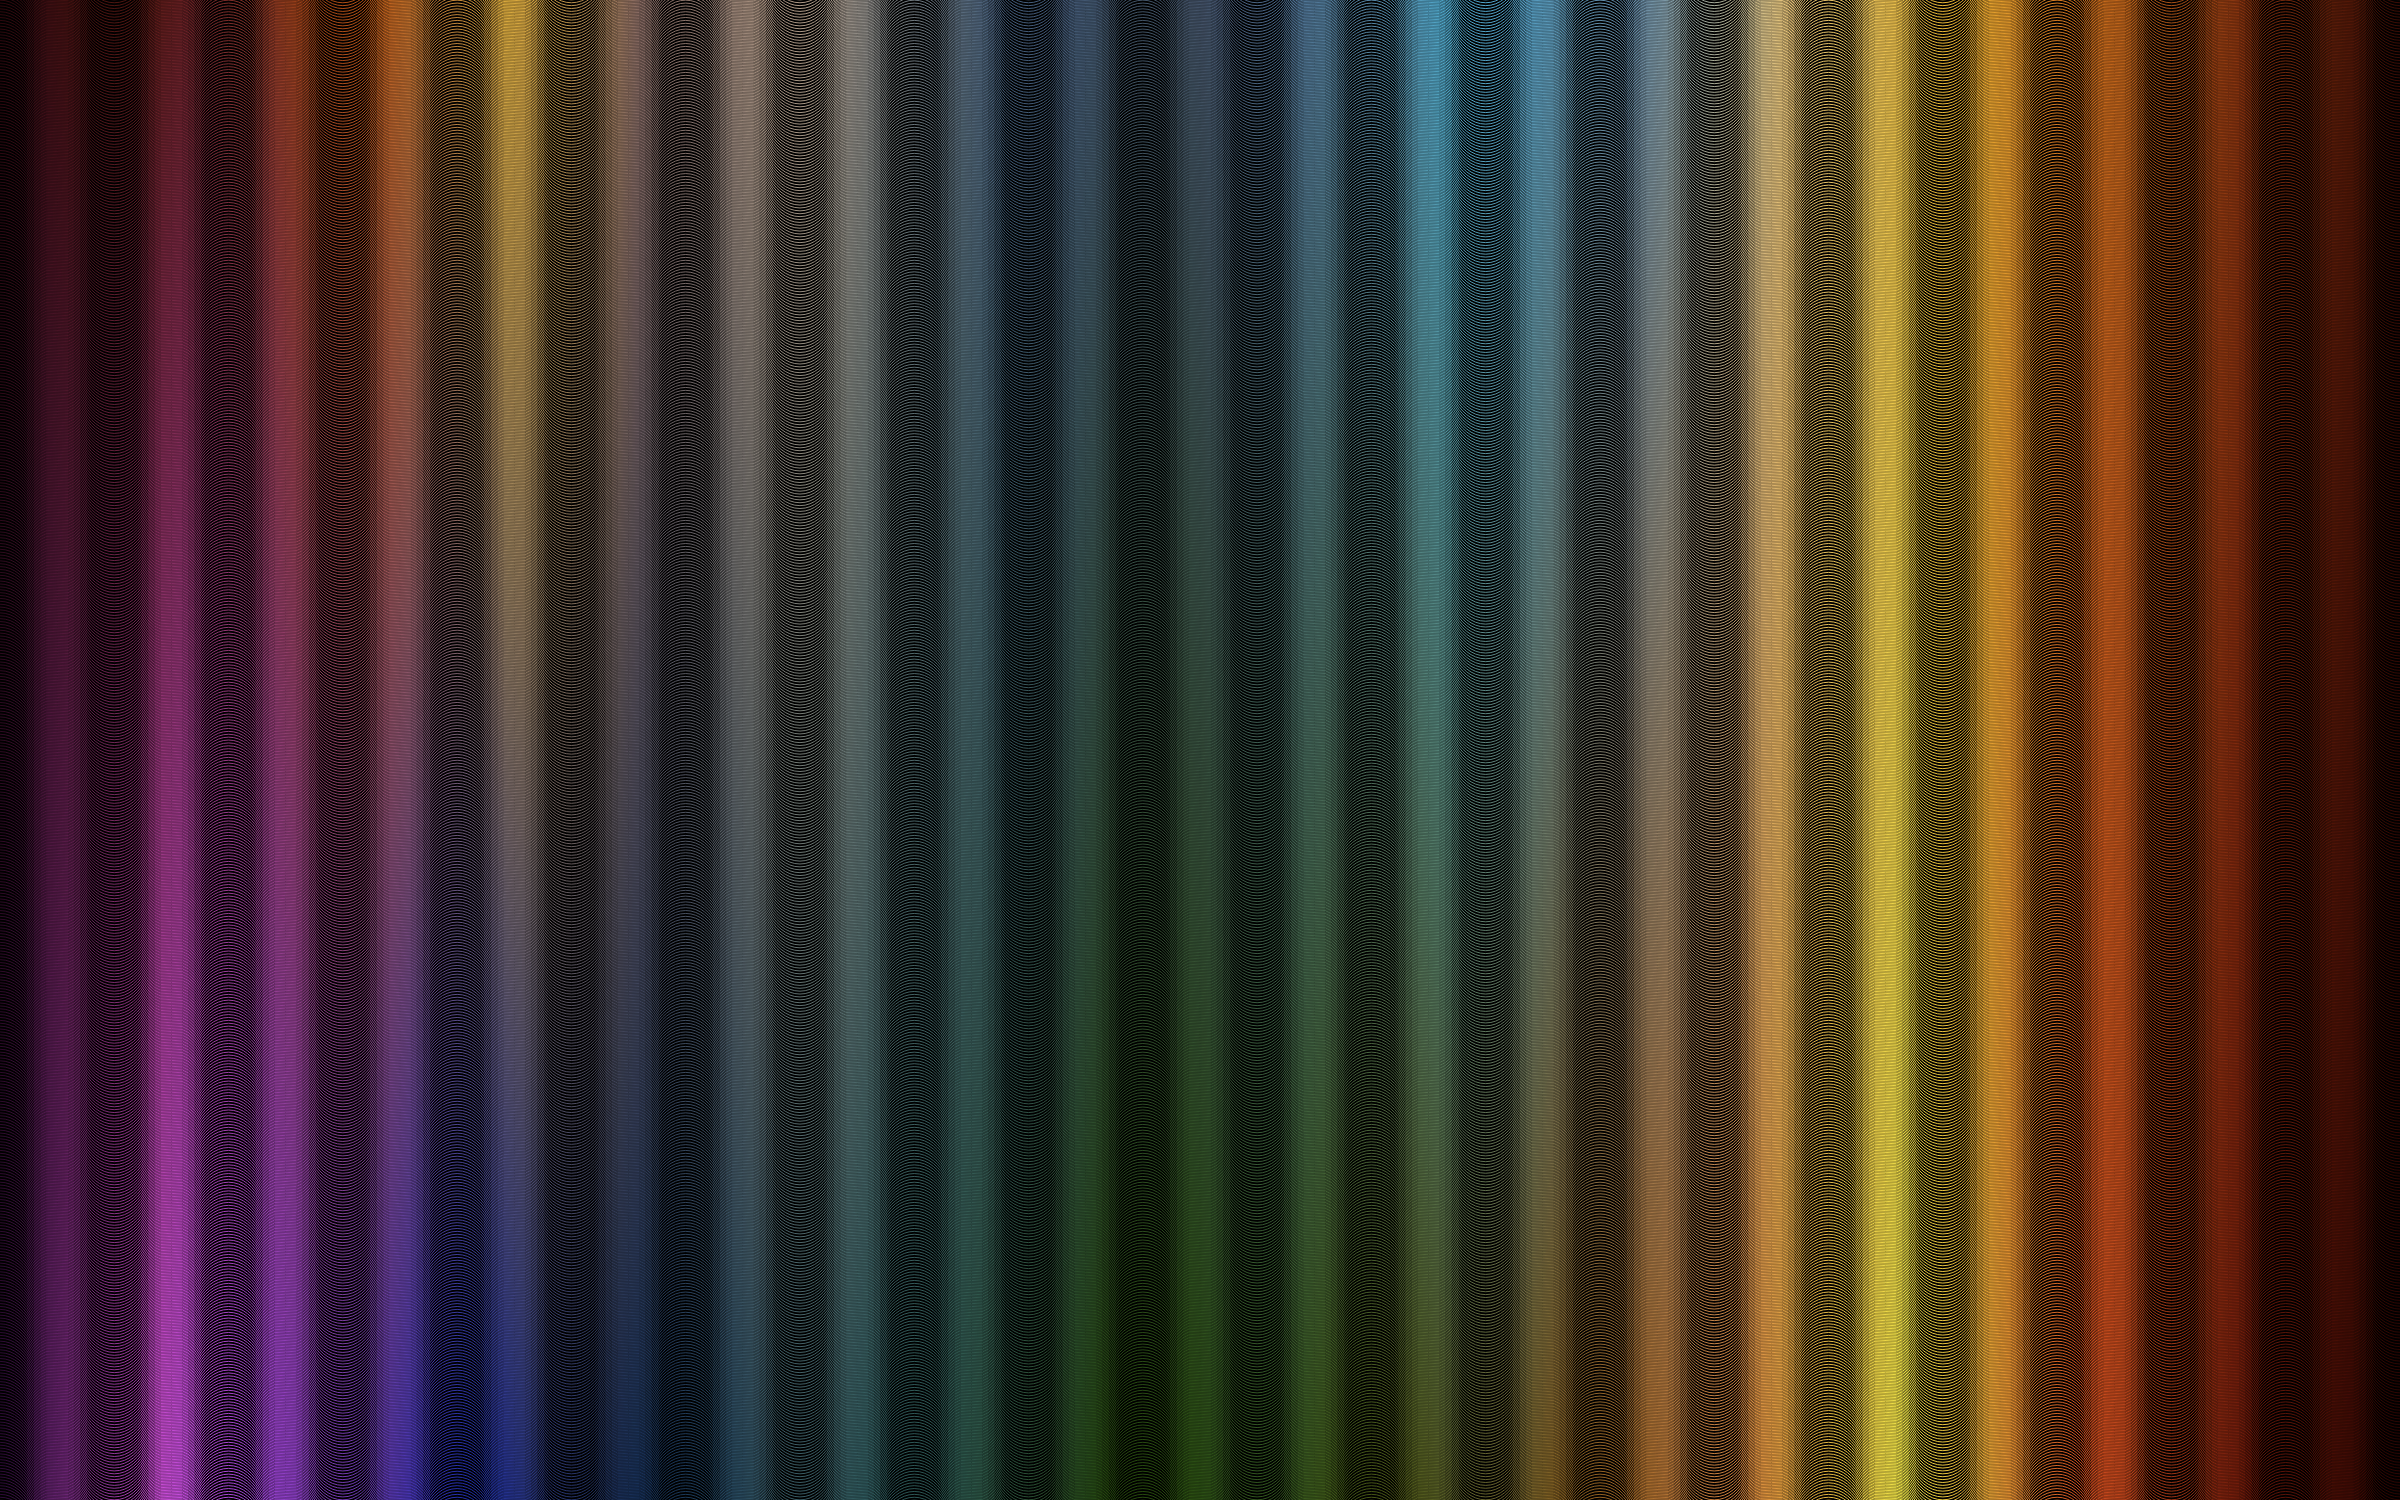 Abstract Prismatic Background by GDJ